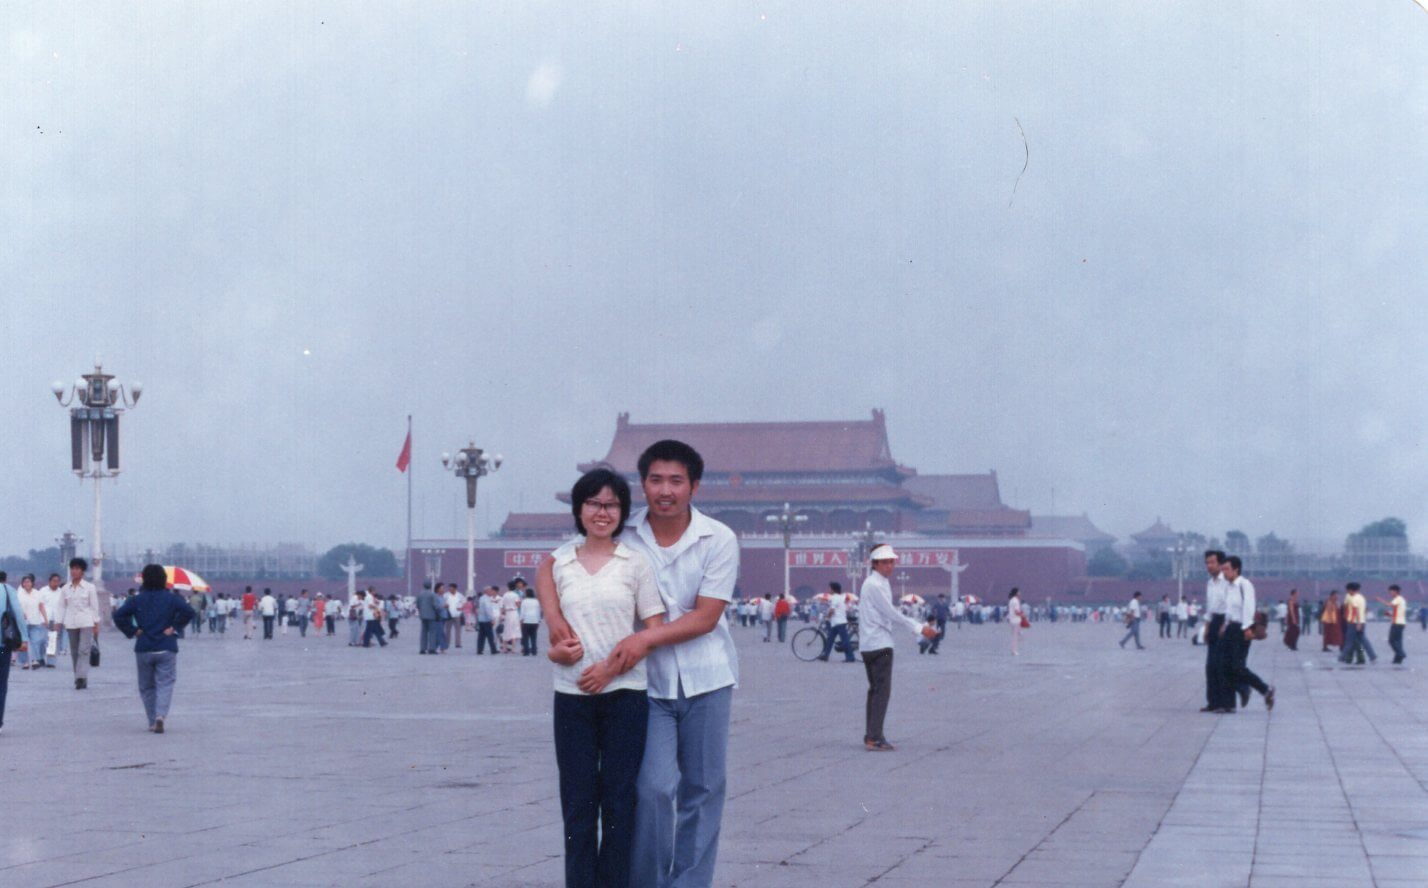 The writer's parents standing in Tiananmen Square in Beijing in the 80s.